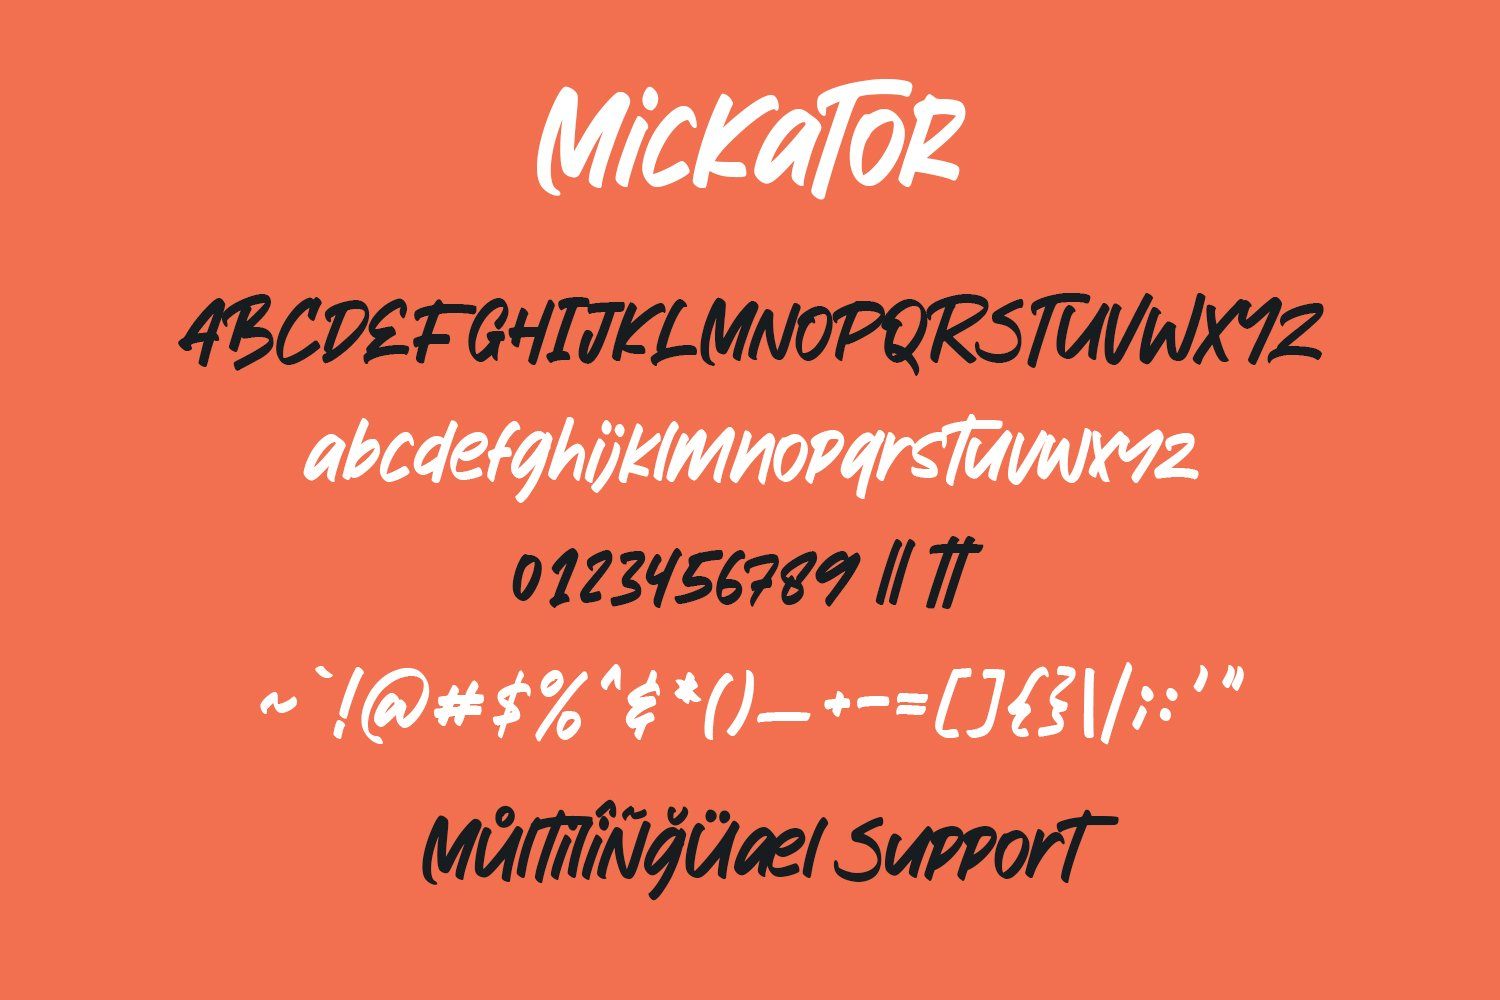 Mickator Stylish Display Font example image 4